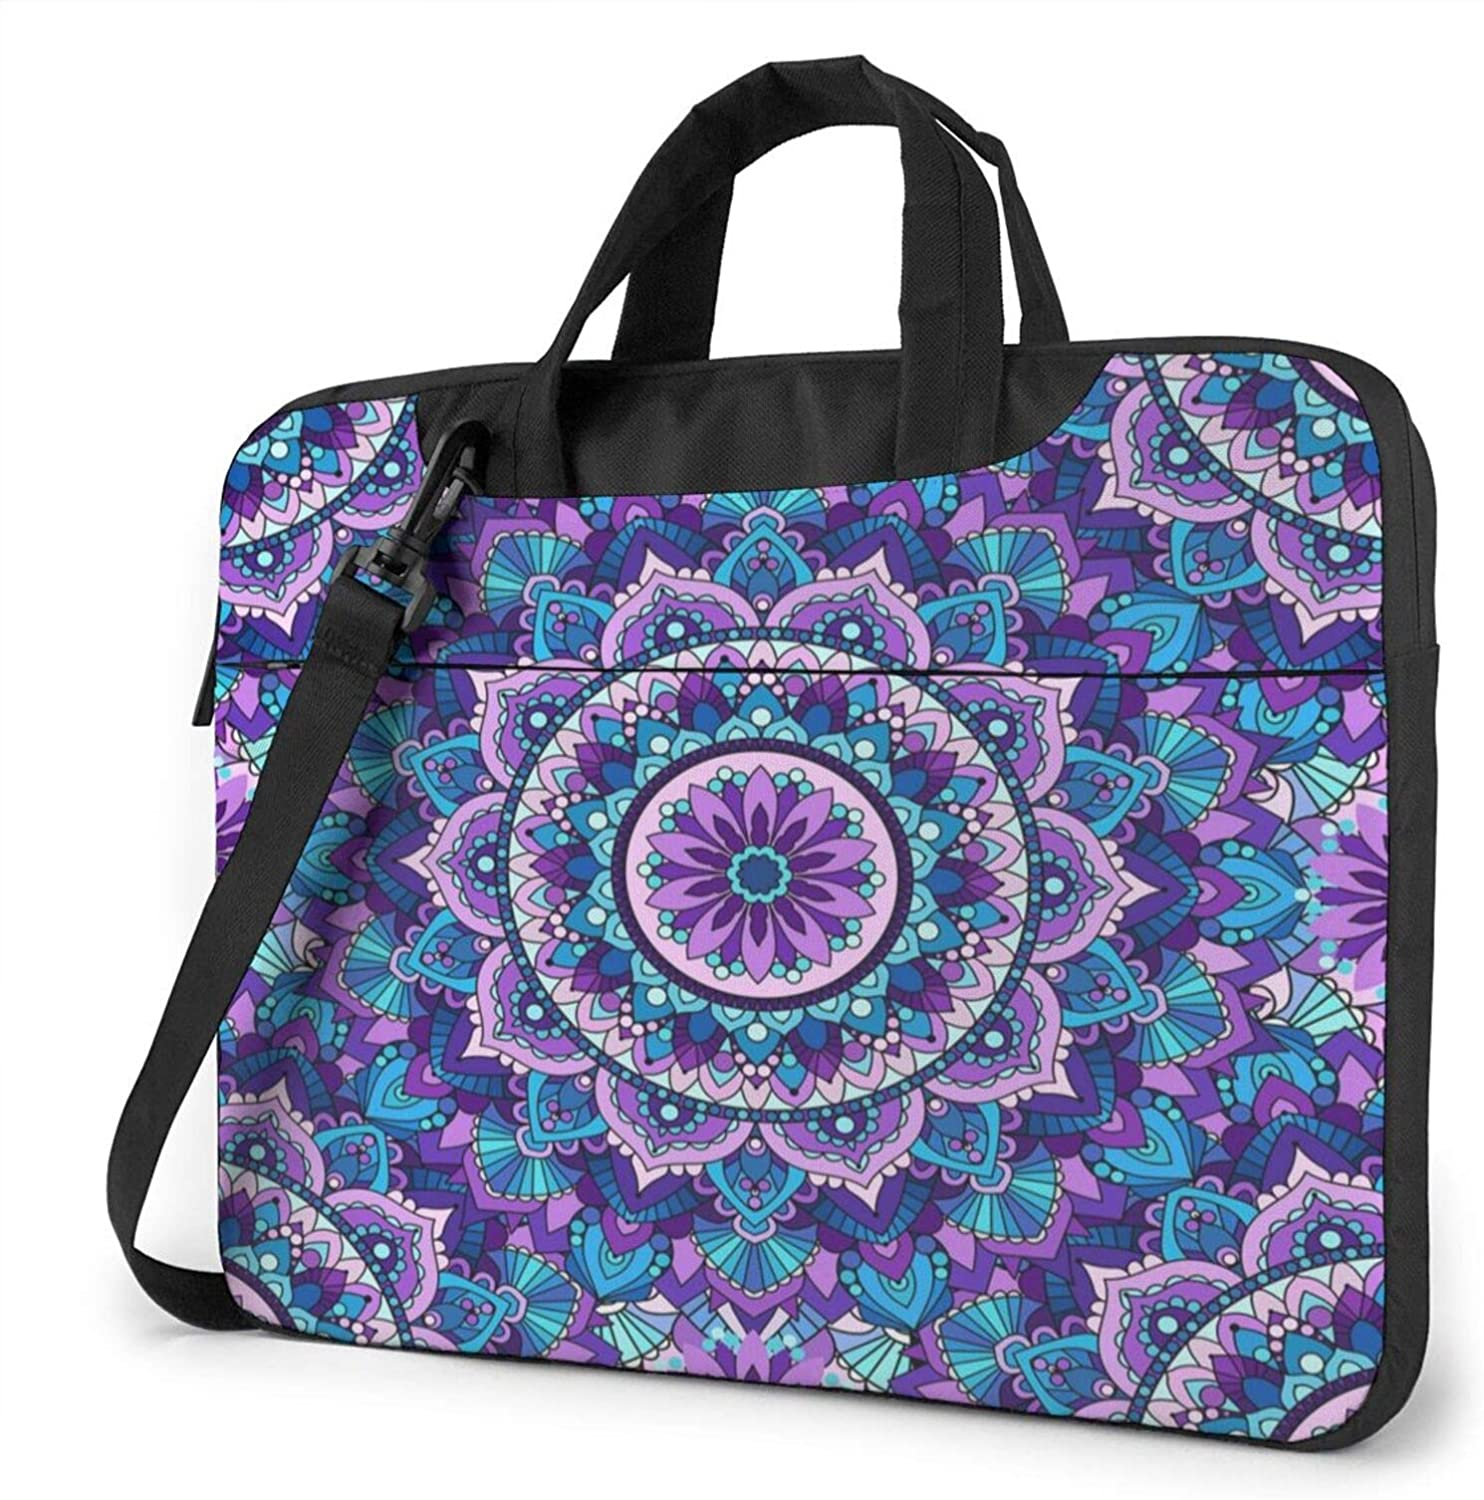 Indian Mandala Pattern Laptop Shoulder Messenger Bag,Laptop Shoulder Bag Carrying Case with Handle Laptop Case Laptop Briefcase 15.6 Inch Fits 14 15 15.6 inch Netbook/Laptop